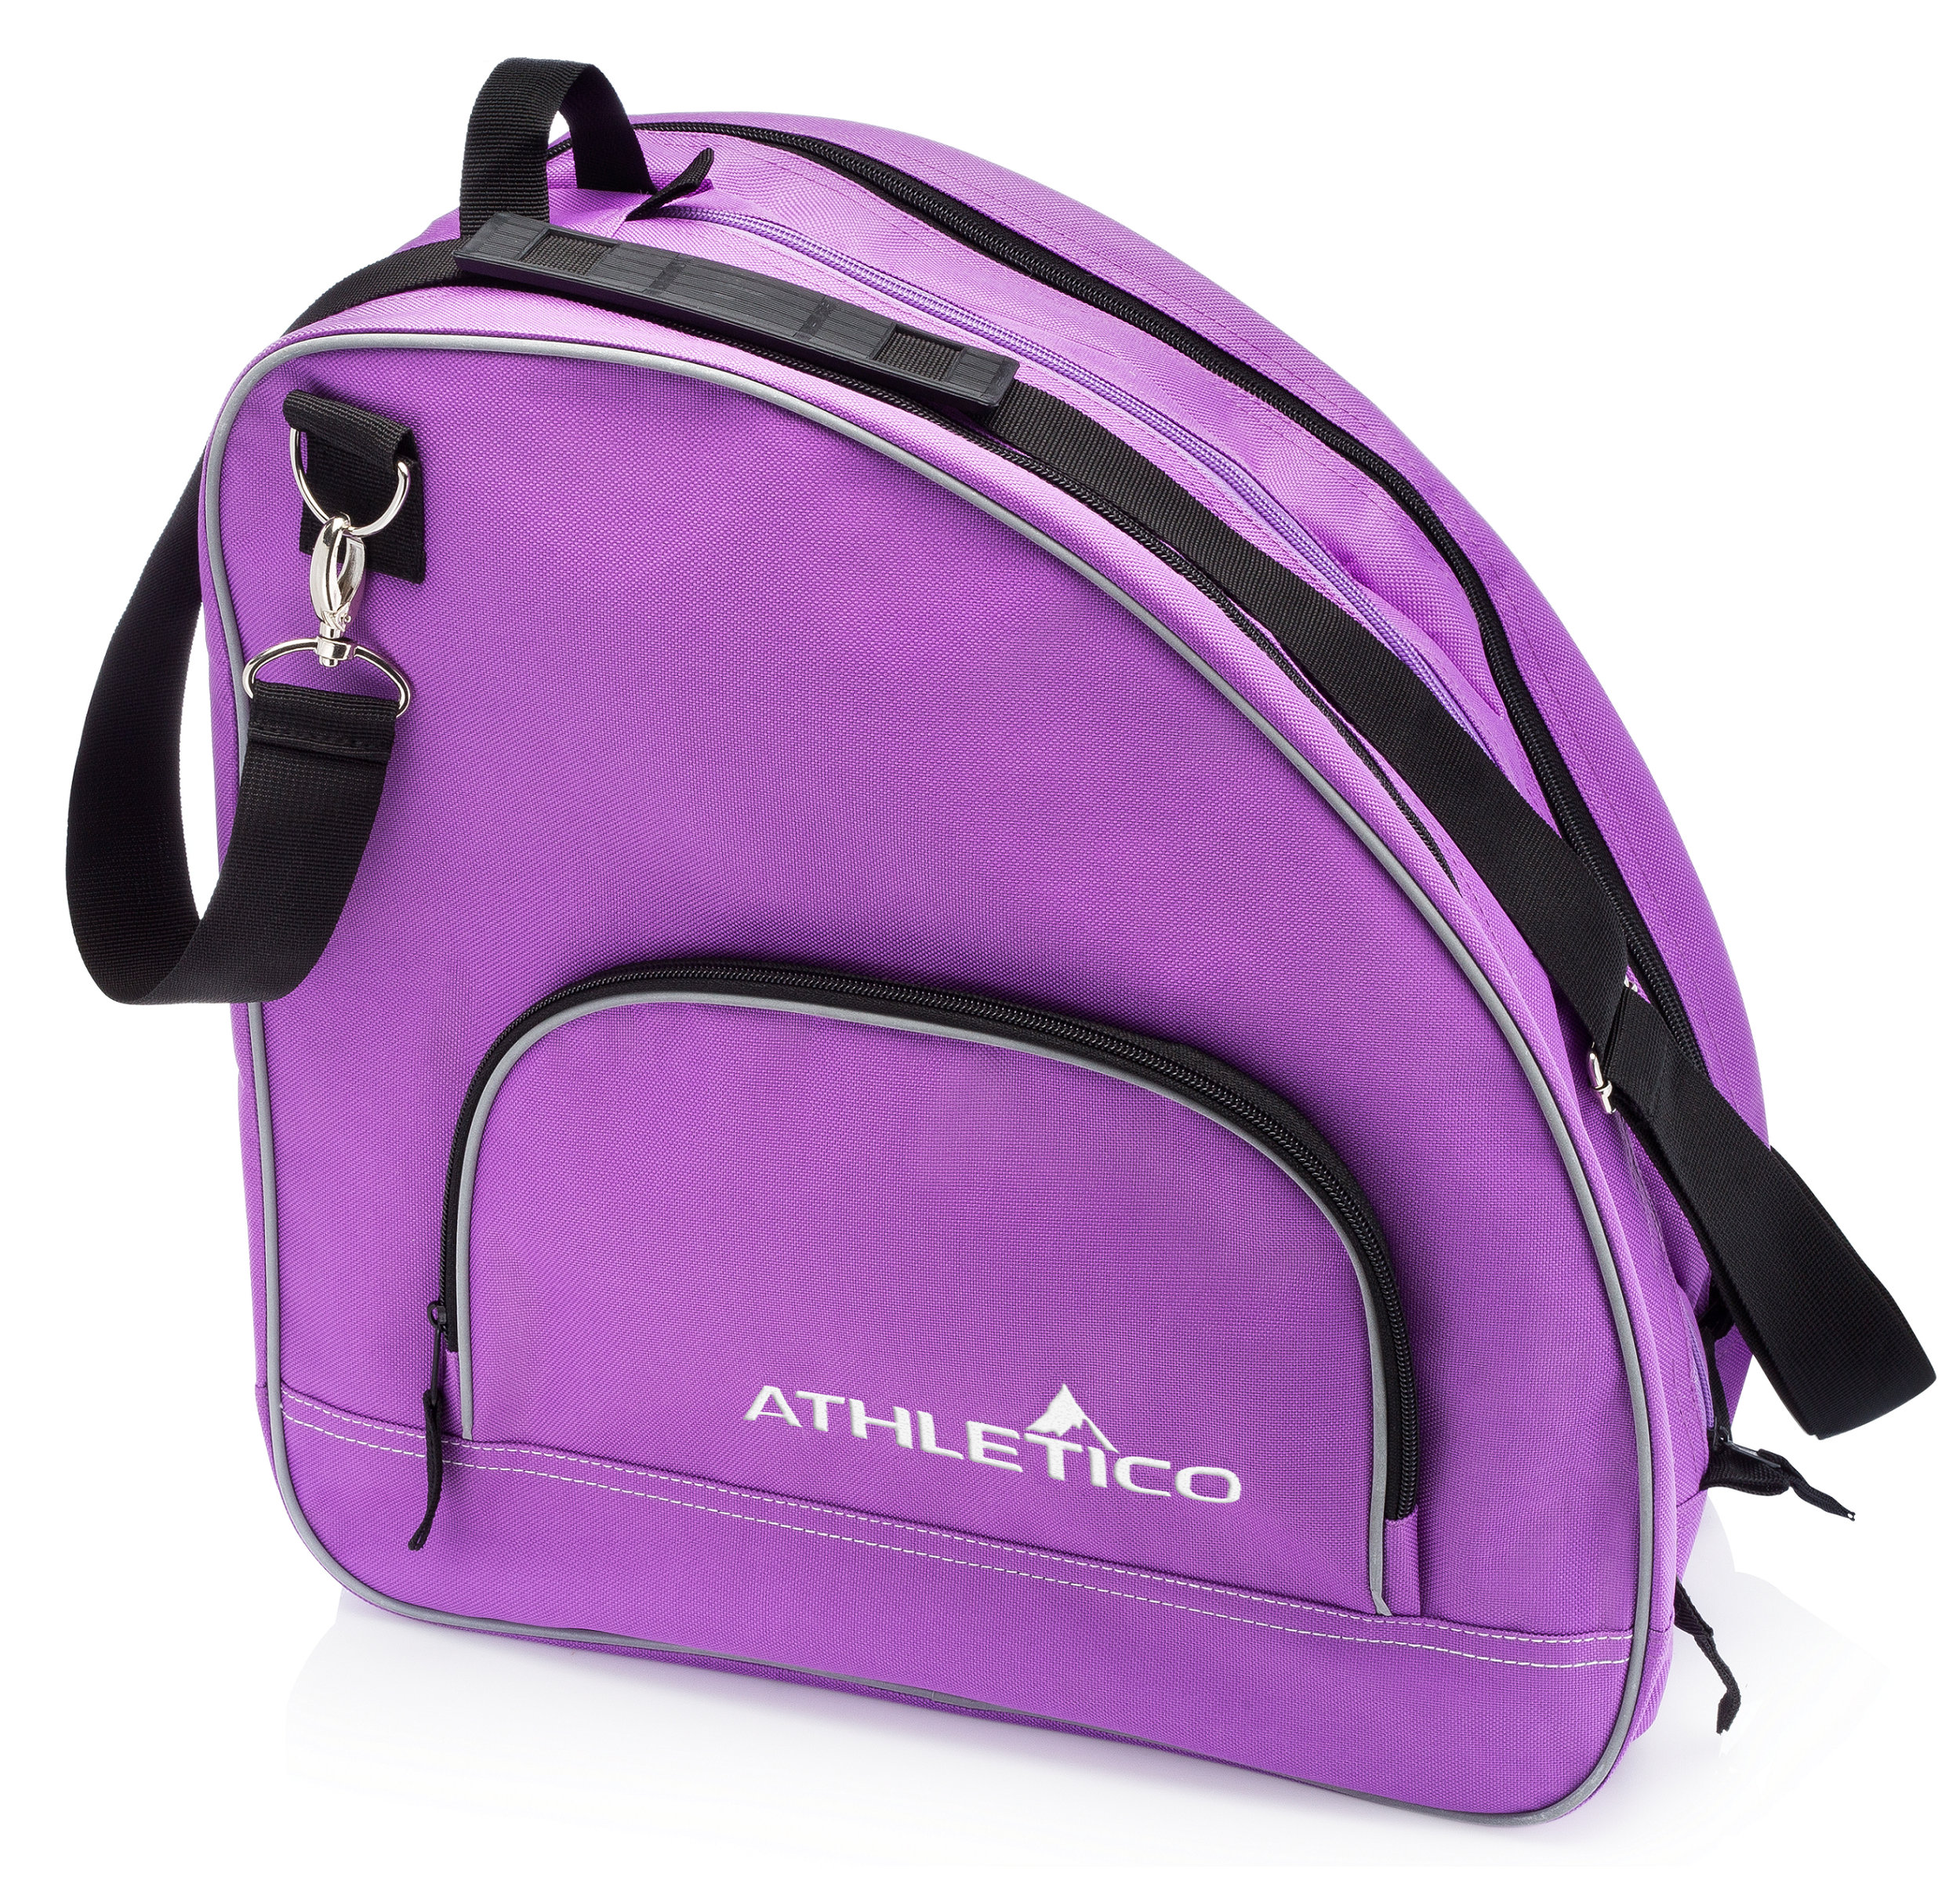 athletico_skate_bag_purple_main_NL.jpg